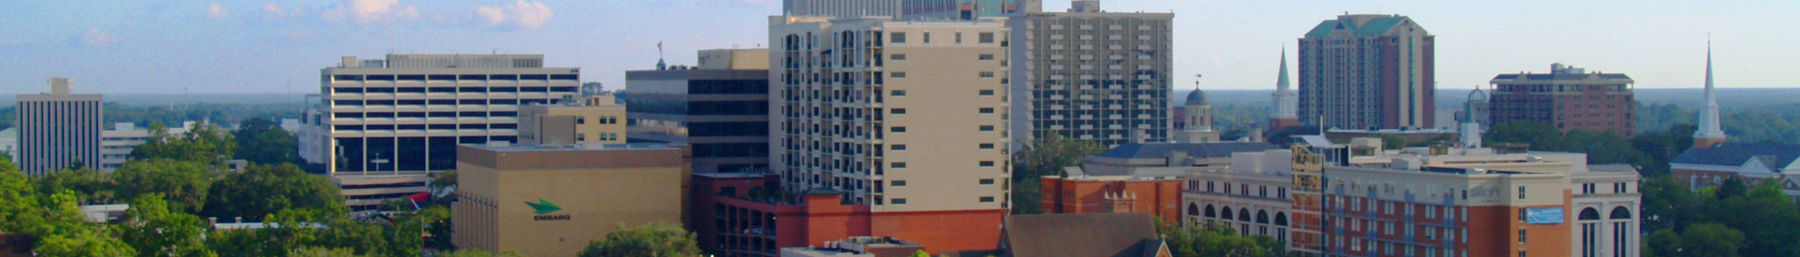 Tallahassee banner downtown aerial.jpg